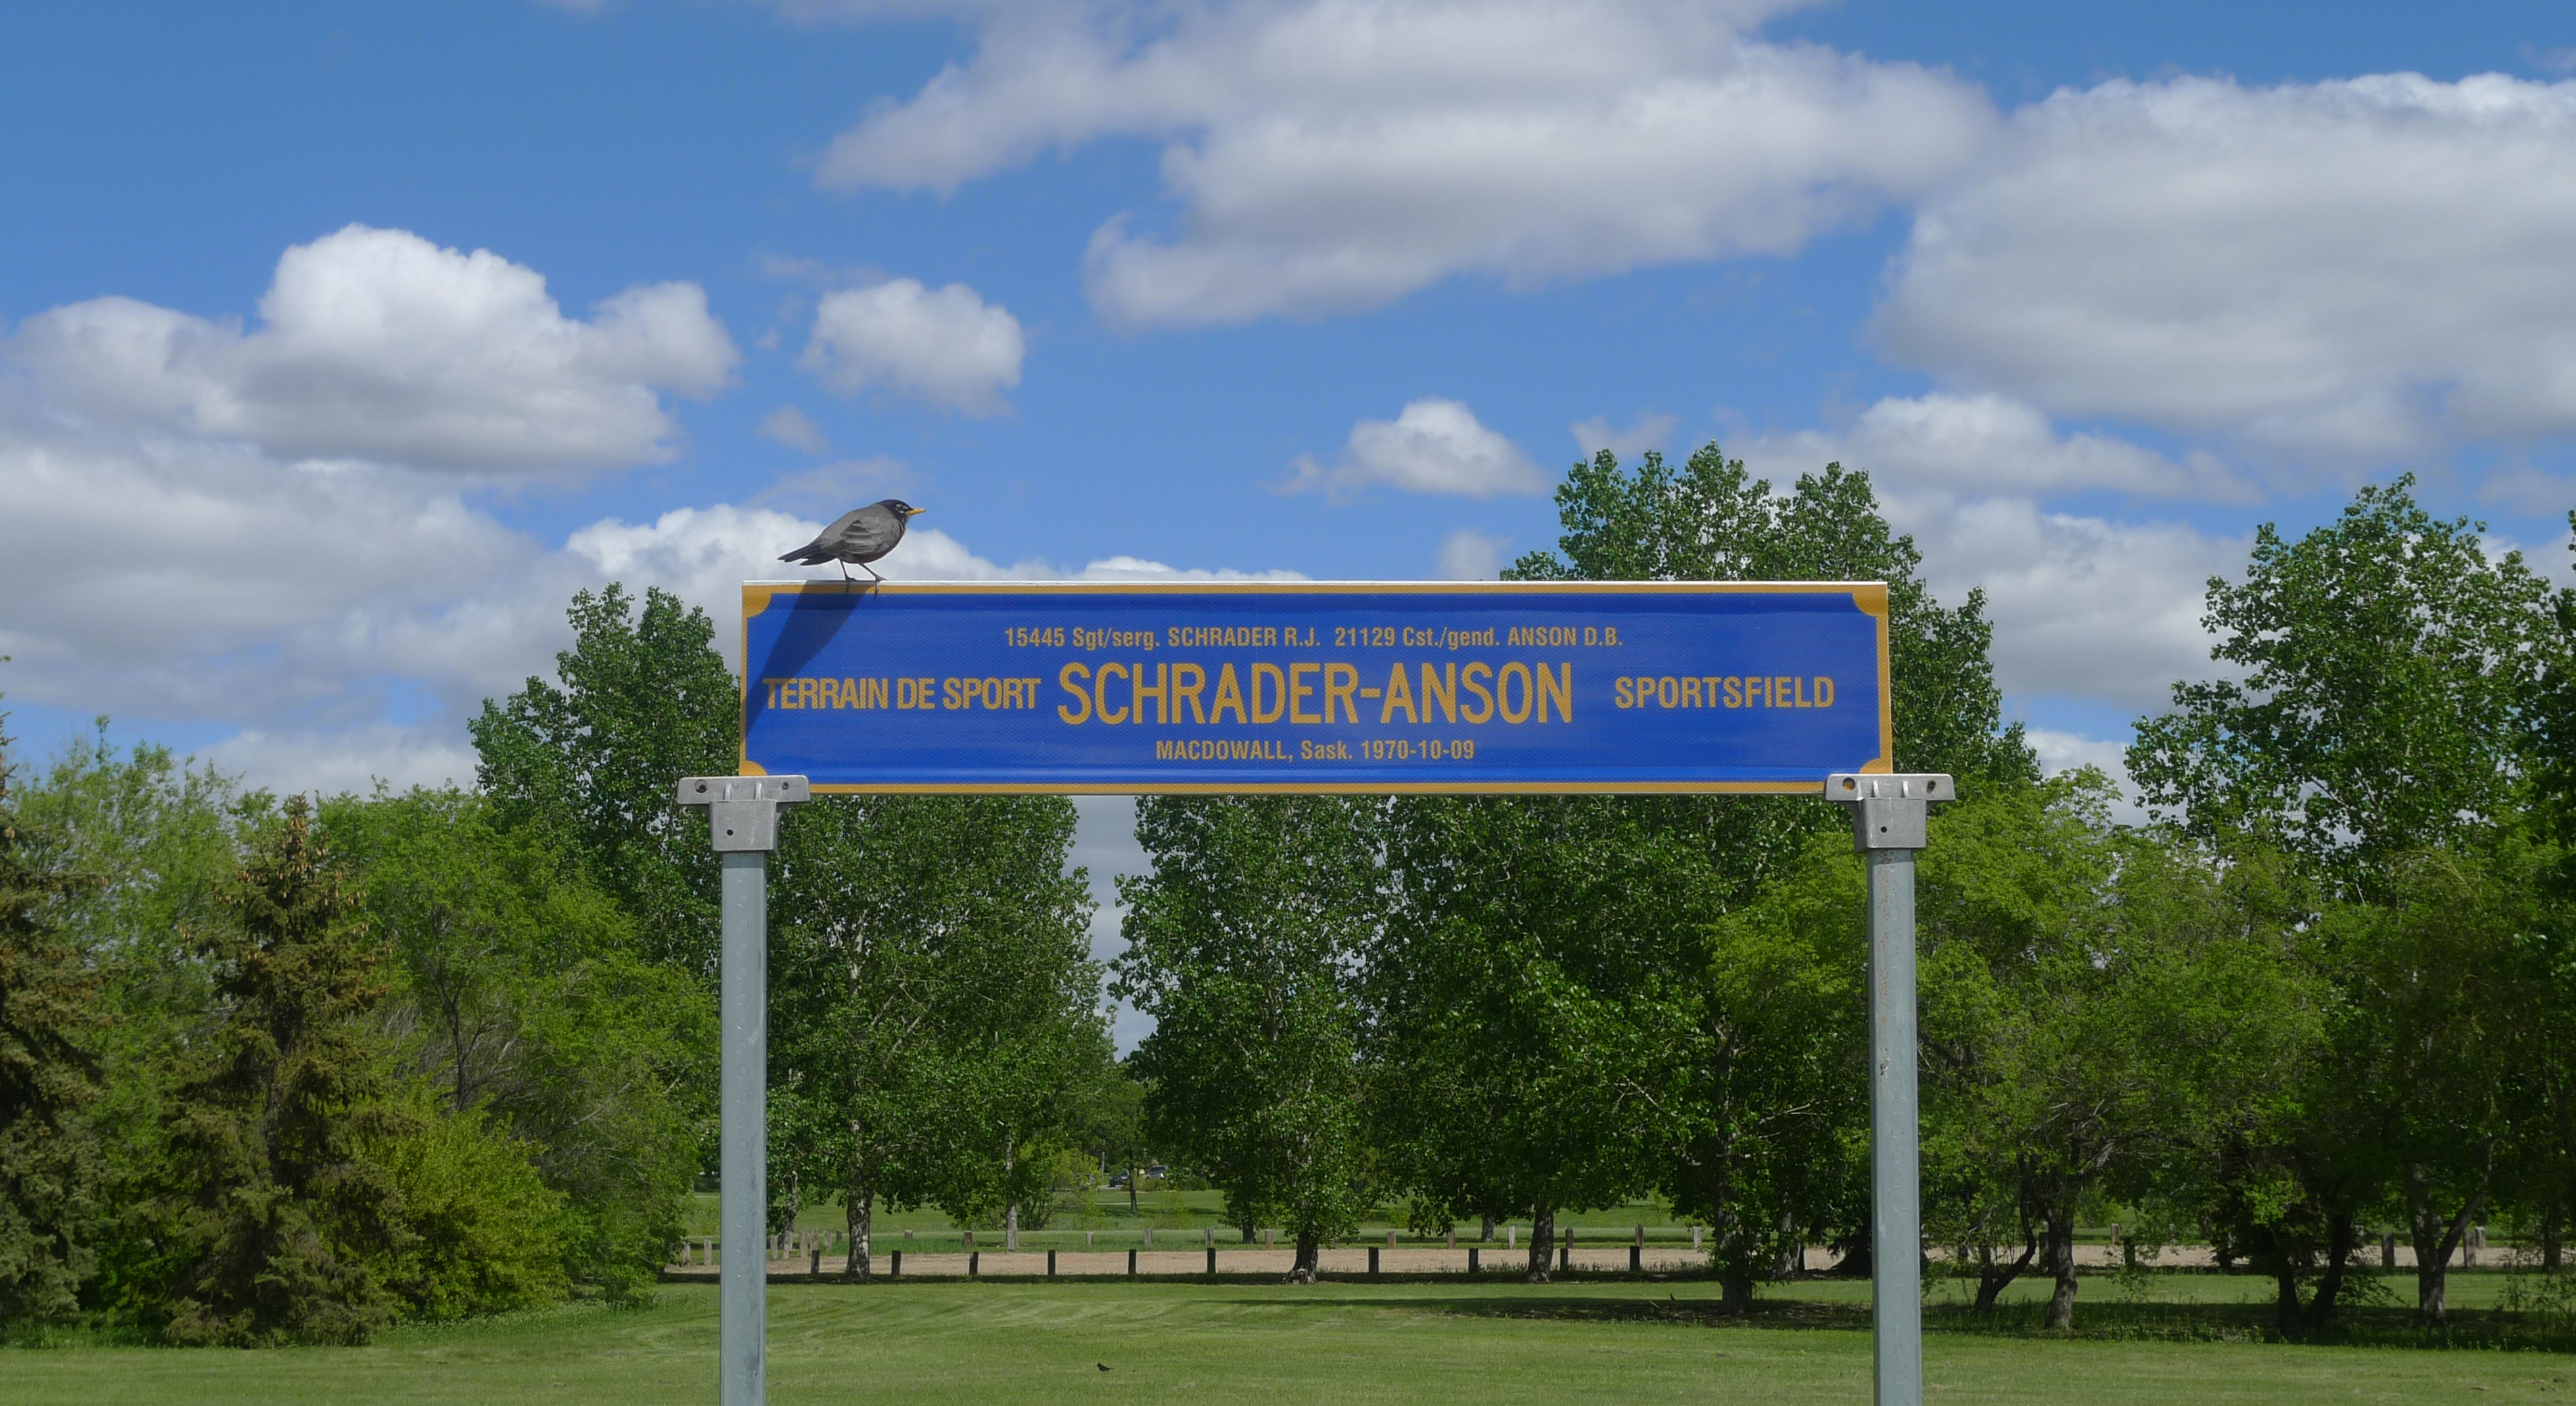 Schrader-Anson Sports Field at Depot